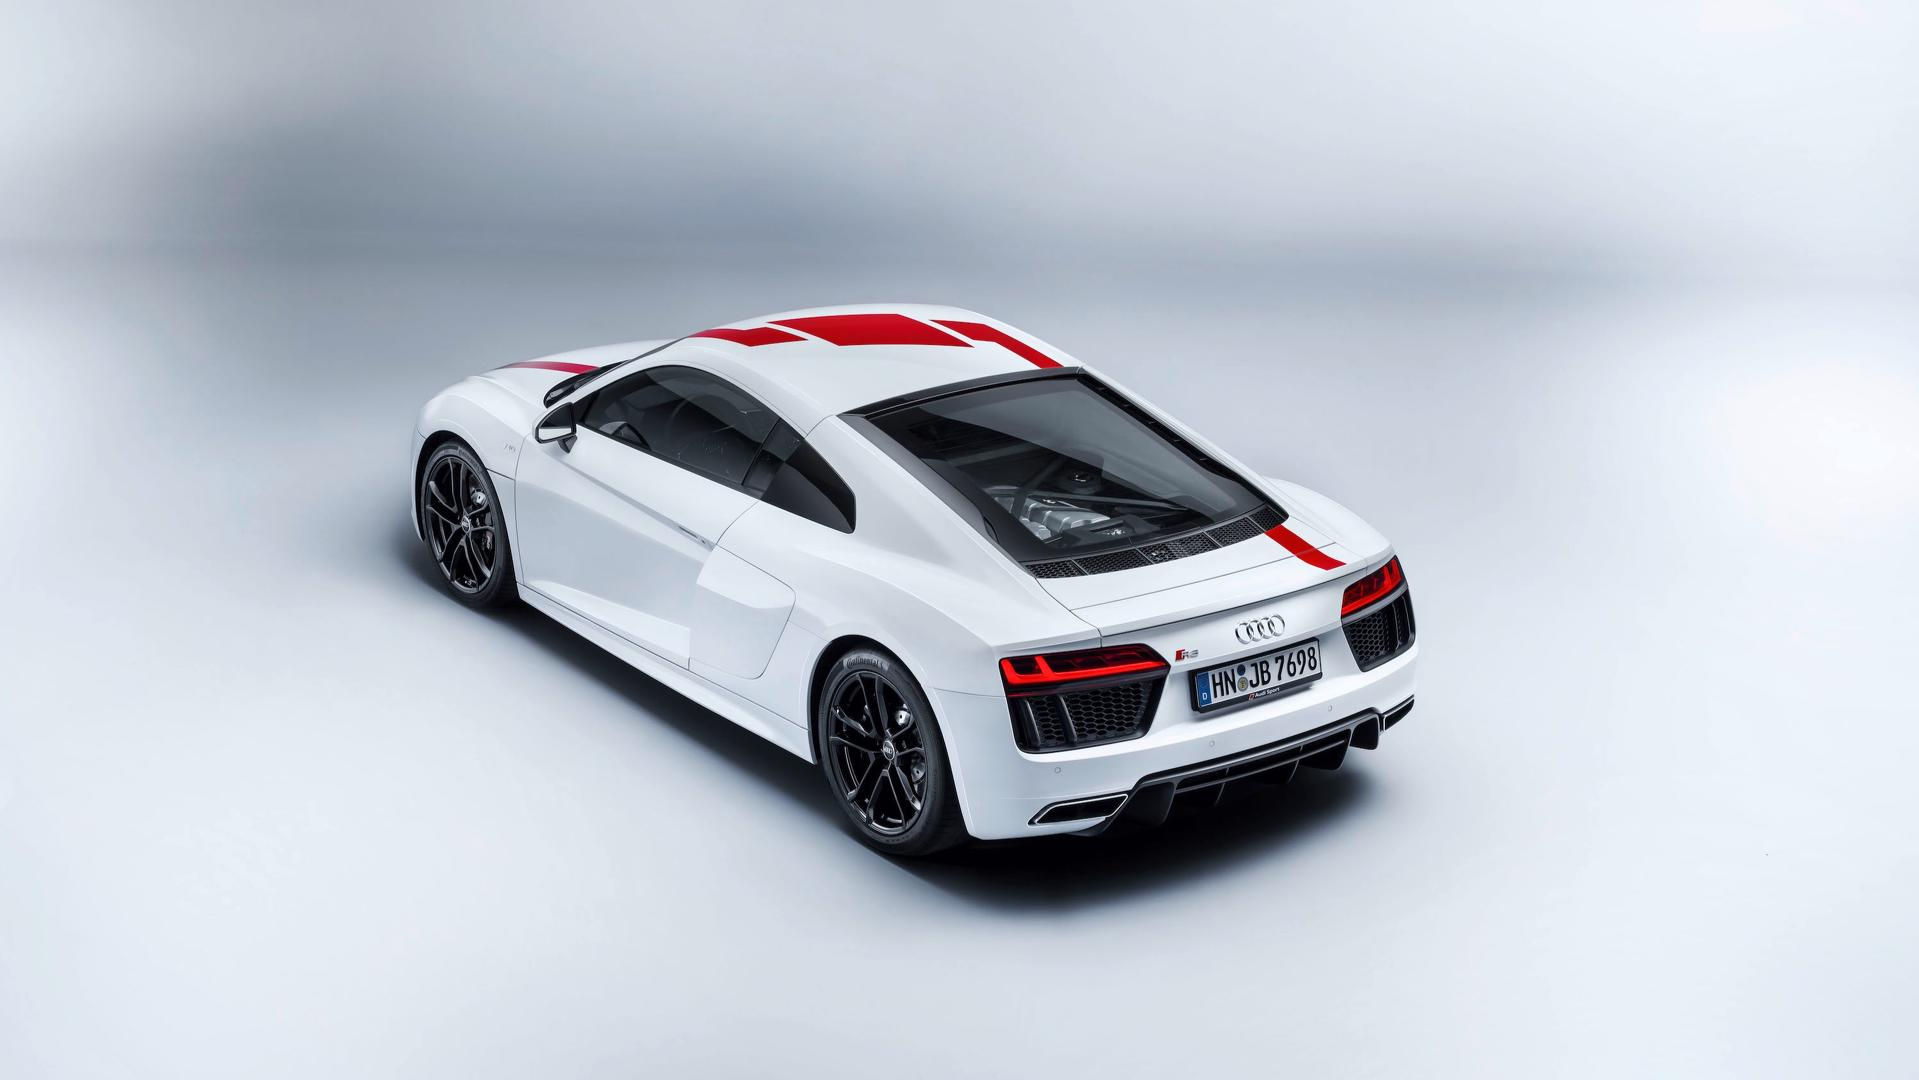 Originally posted by press release puristic driving dynamics the new audi r8 v10 rws